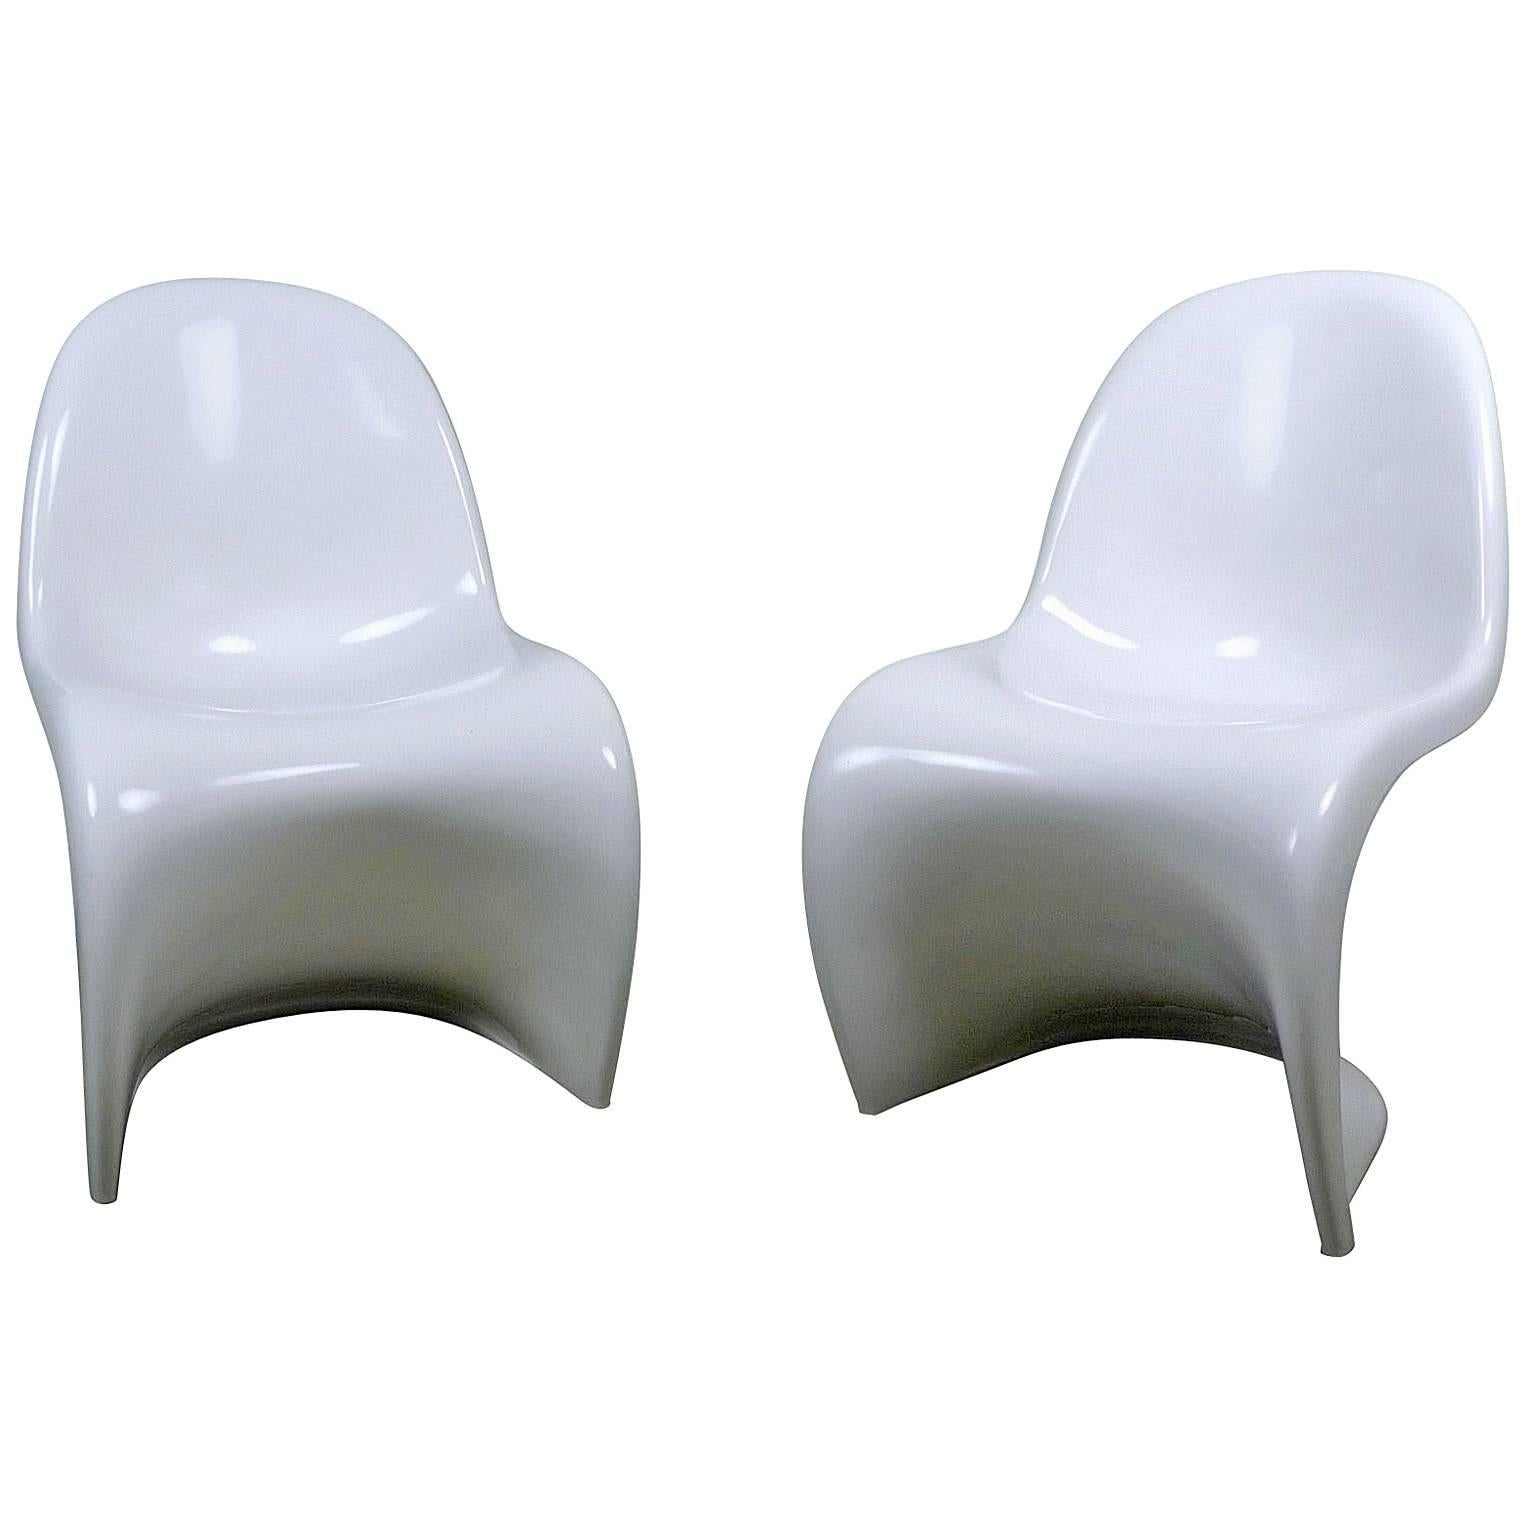 Pair Of White Panton Chairs By Verner Panton For Fehlbau From 1971 And 1972